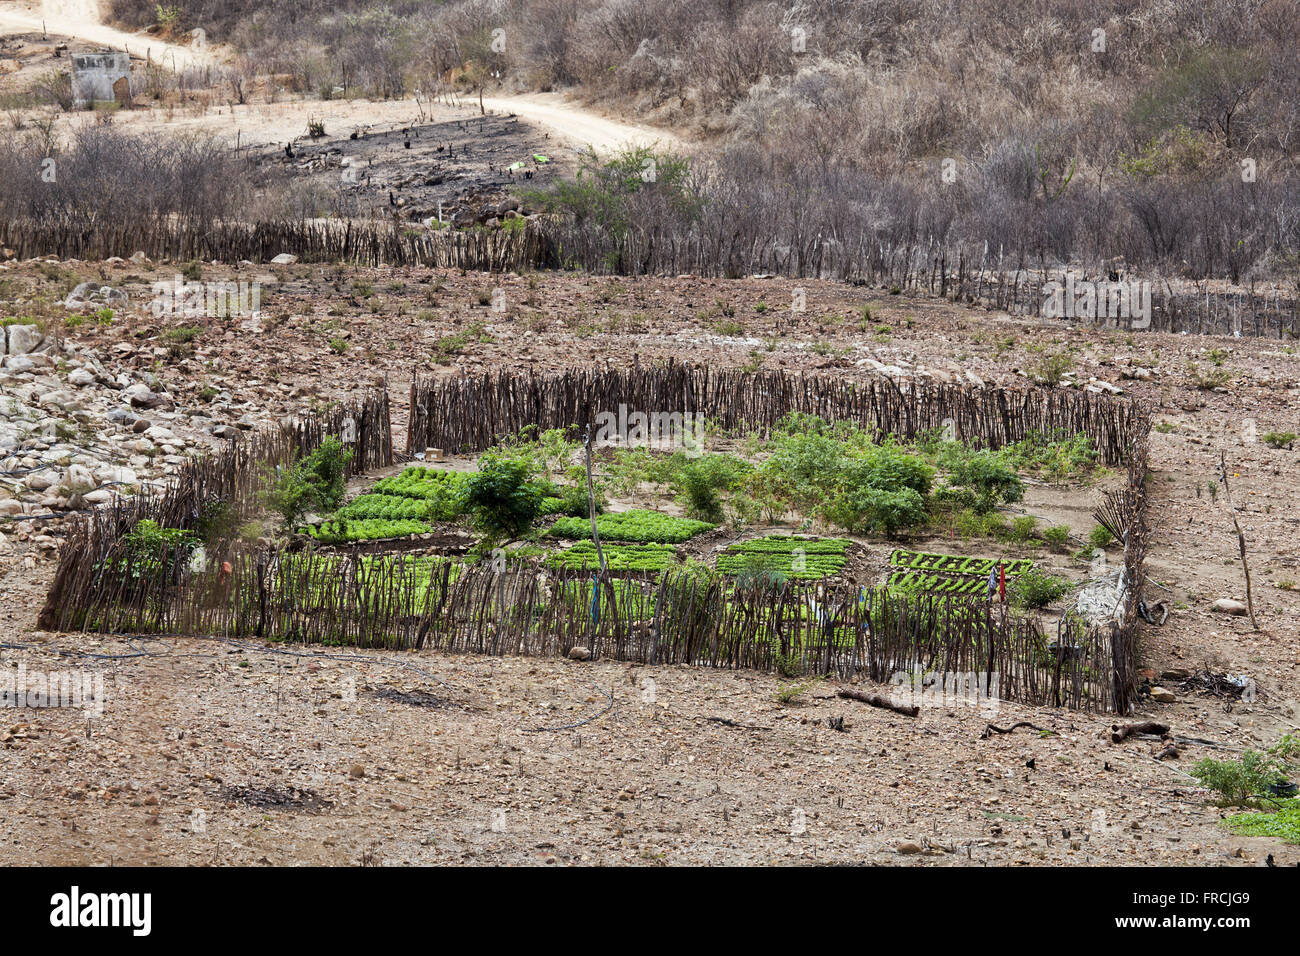 Horta small subsistence farm in the district of Canaan - region of the Pajeú Brushland - Stock Image